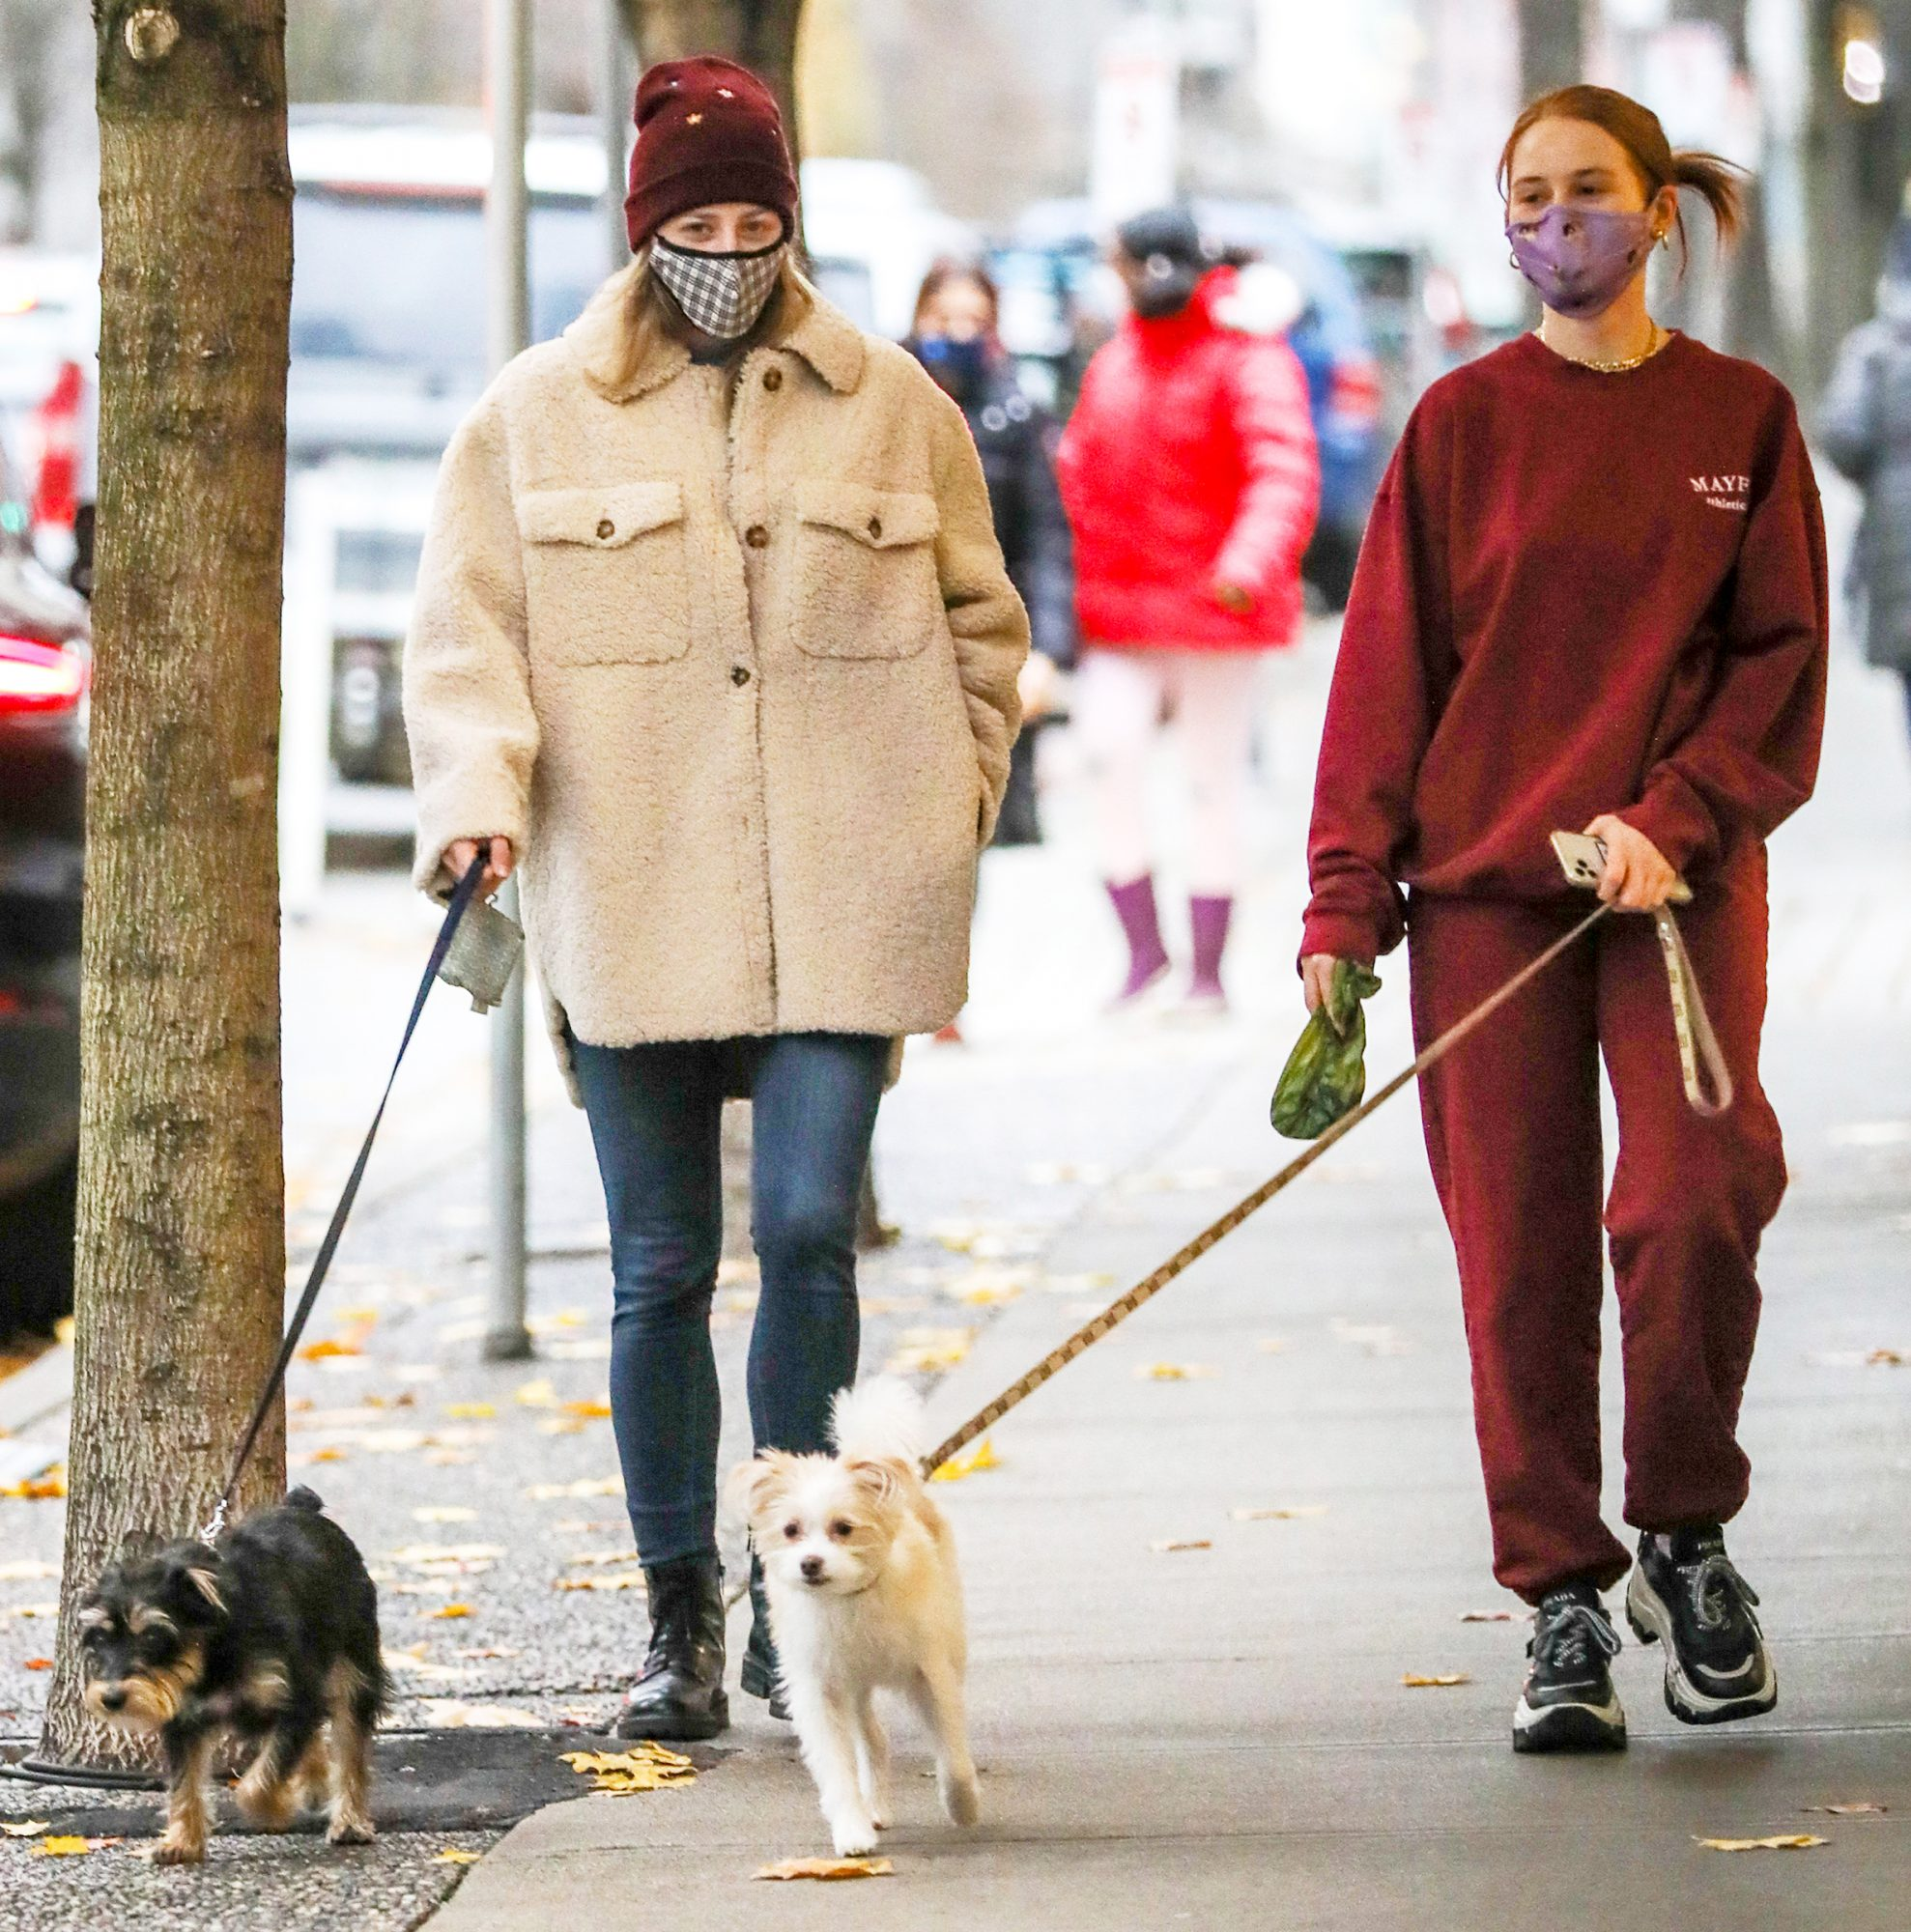 Lili Reinhart and Madelaine Petsch from 'Riverdale' Take Their Dogs for a Walk in Vancouver, Canada.